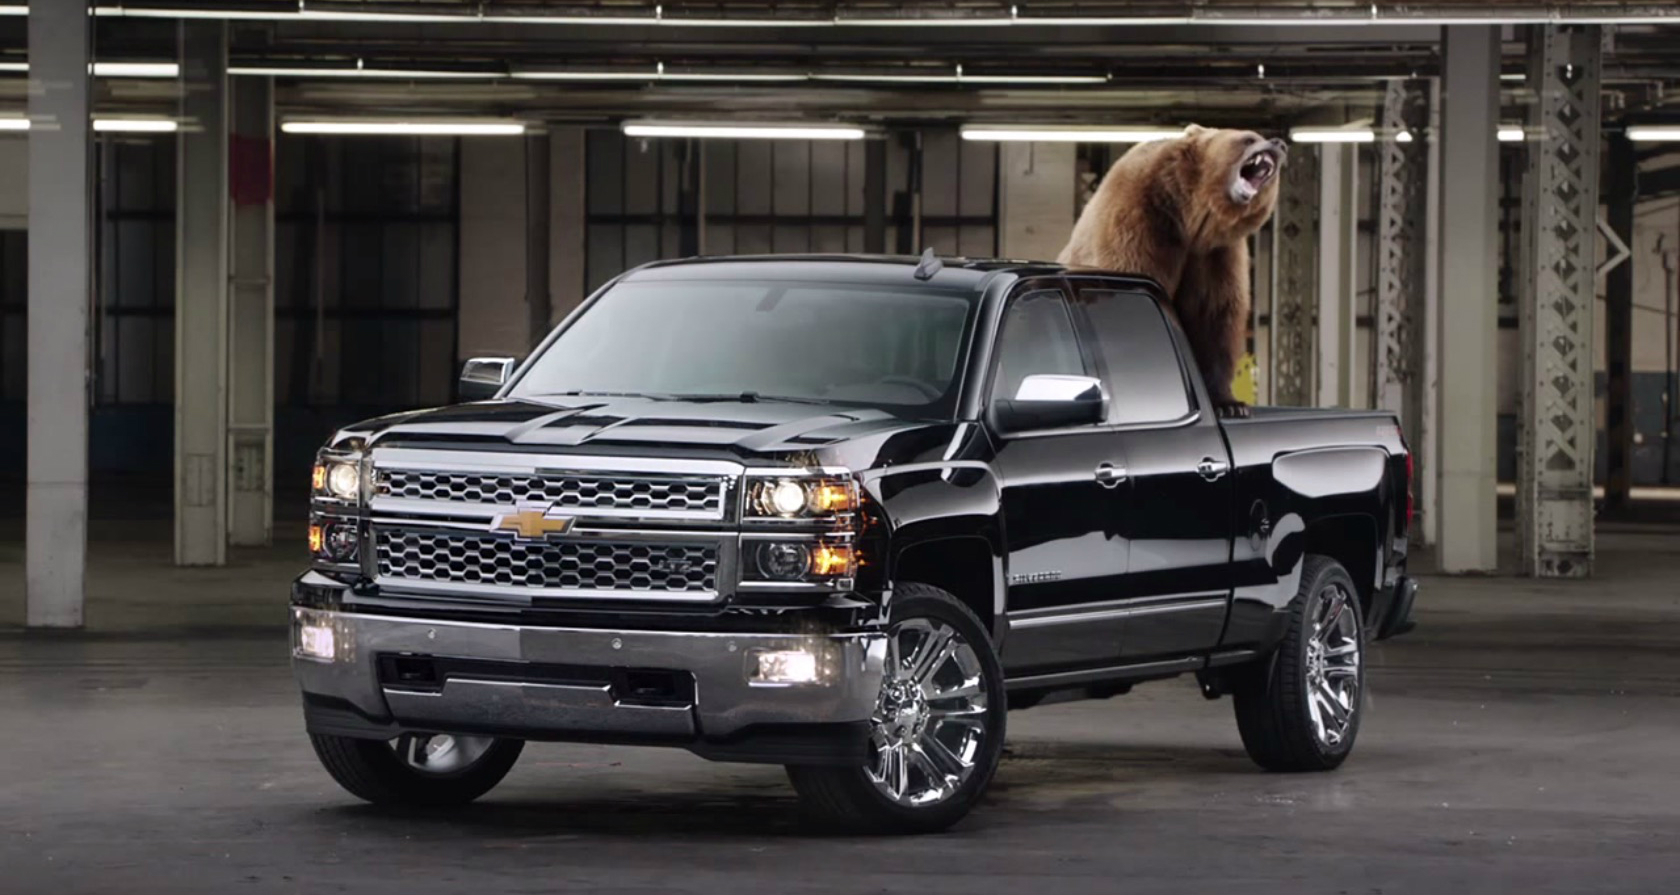 Chevrolet Silverado Commercials Fail to Downplay the ...